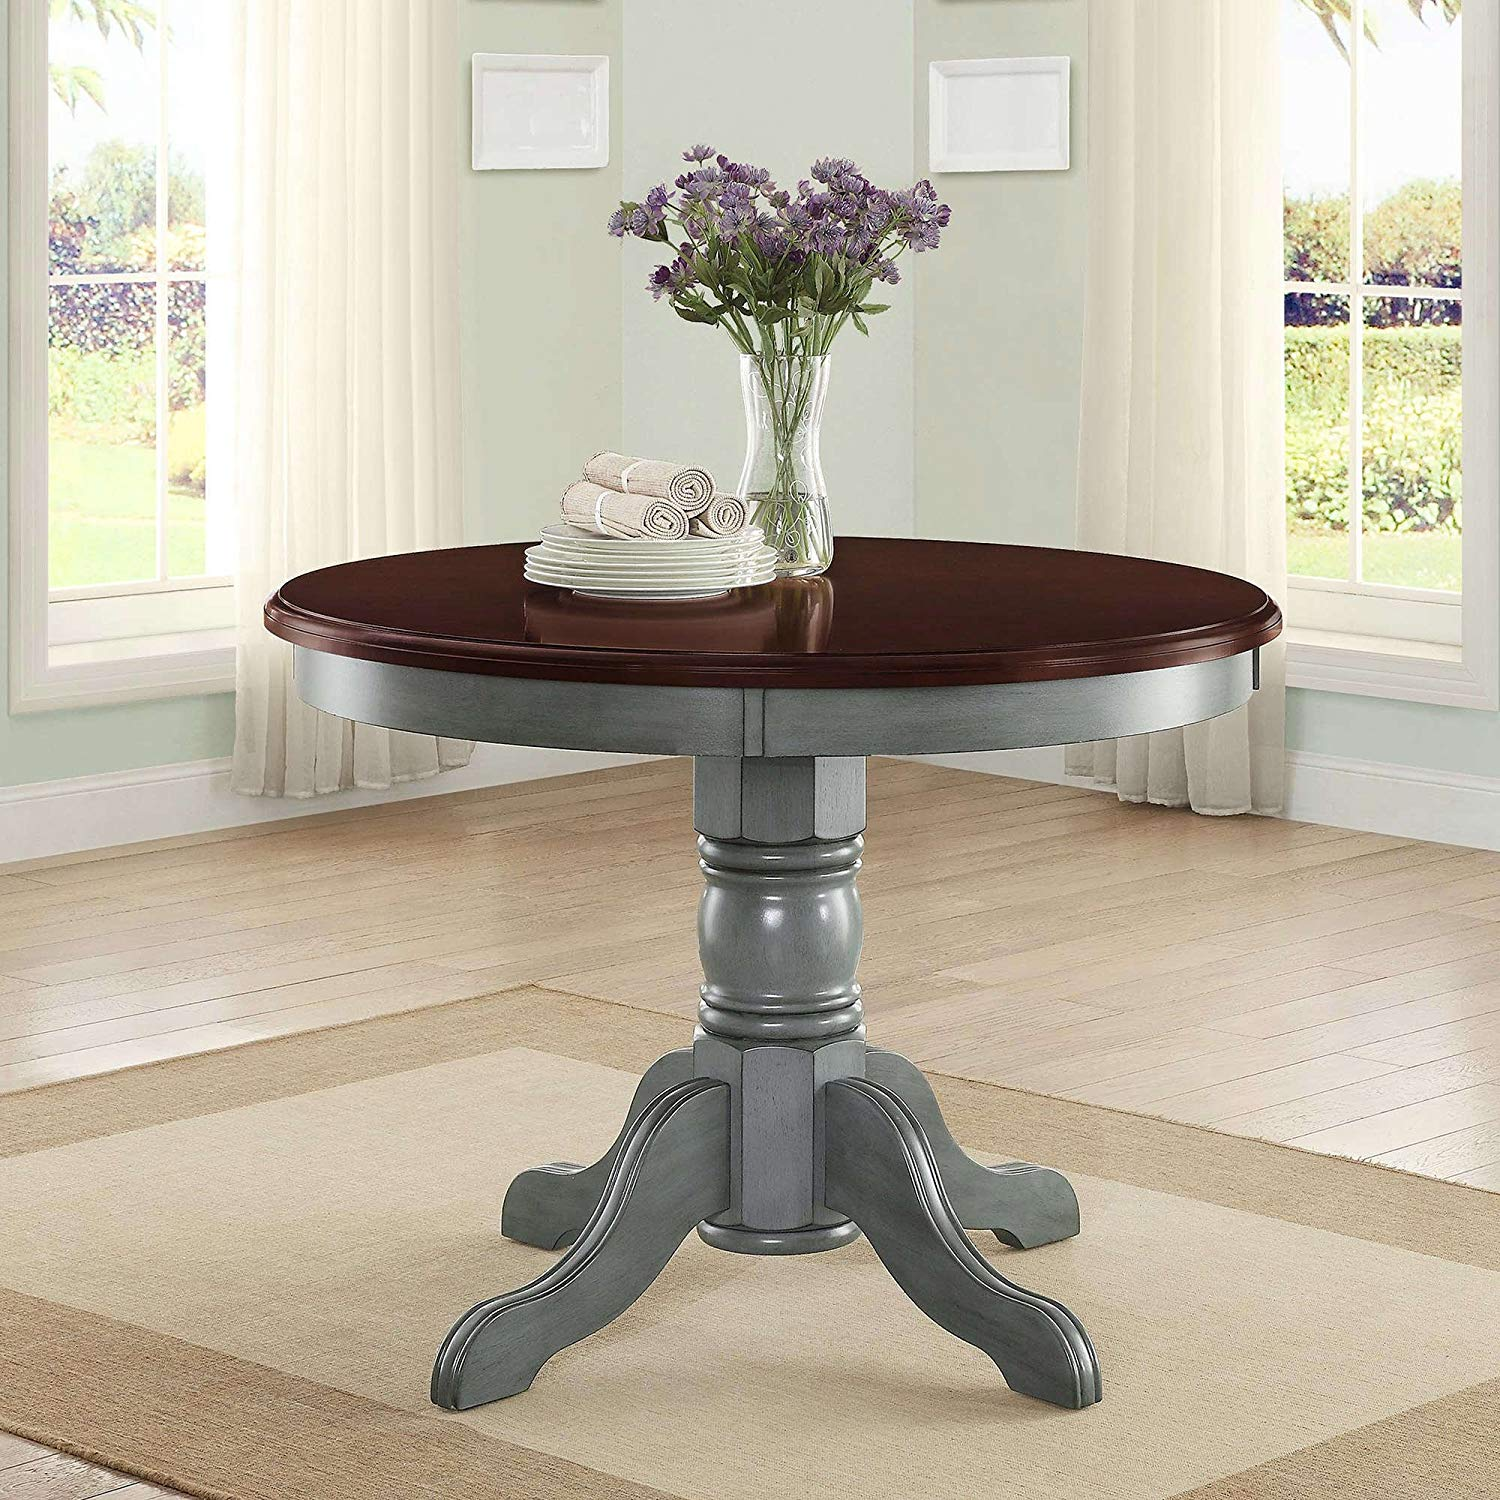 Wood Dining Table, Round Shape, Durable Construction, Contemporary Style, Seats up to Four People, Functional, Perfect for Restaurants, Bistro, Kitchen, Home Furniture + Expert Guide